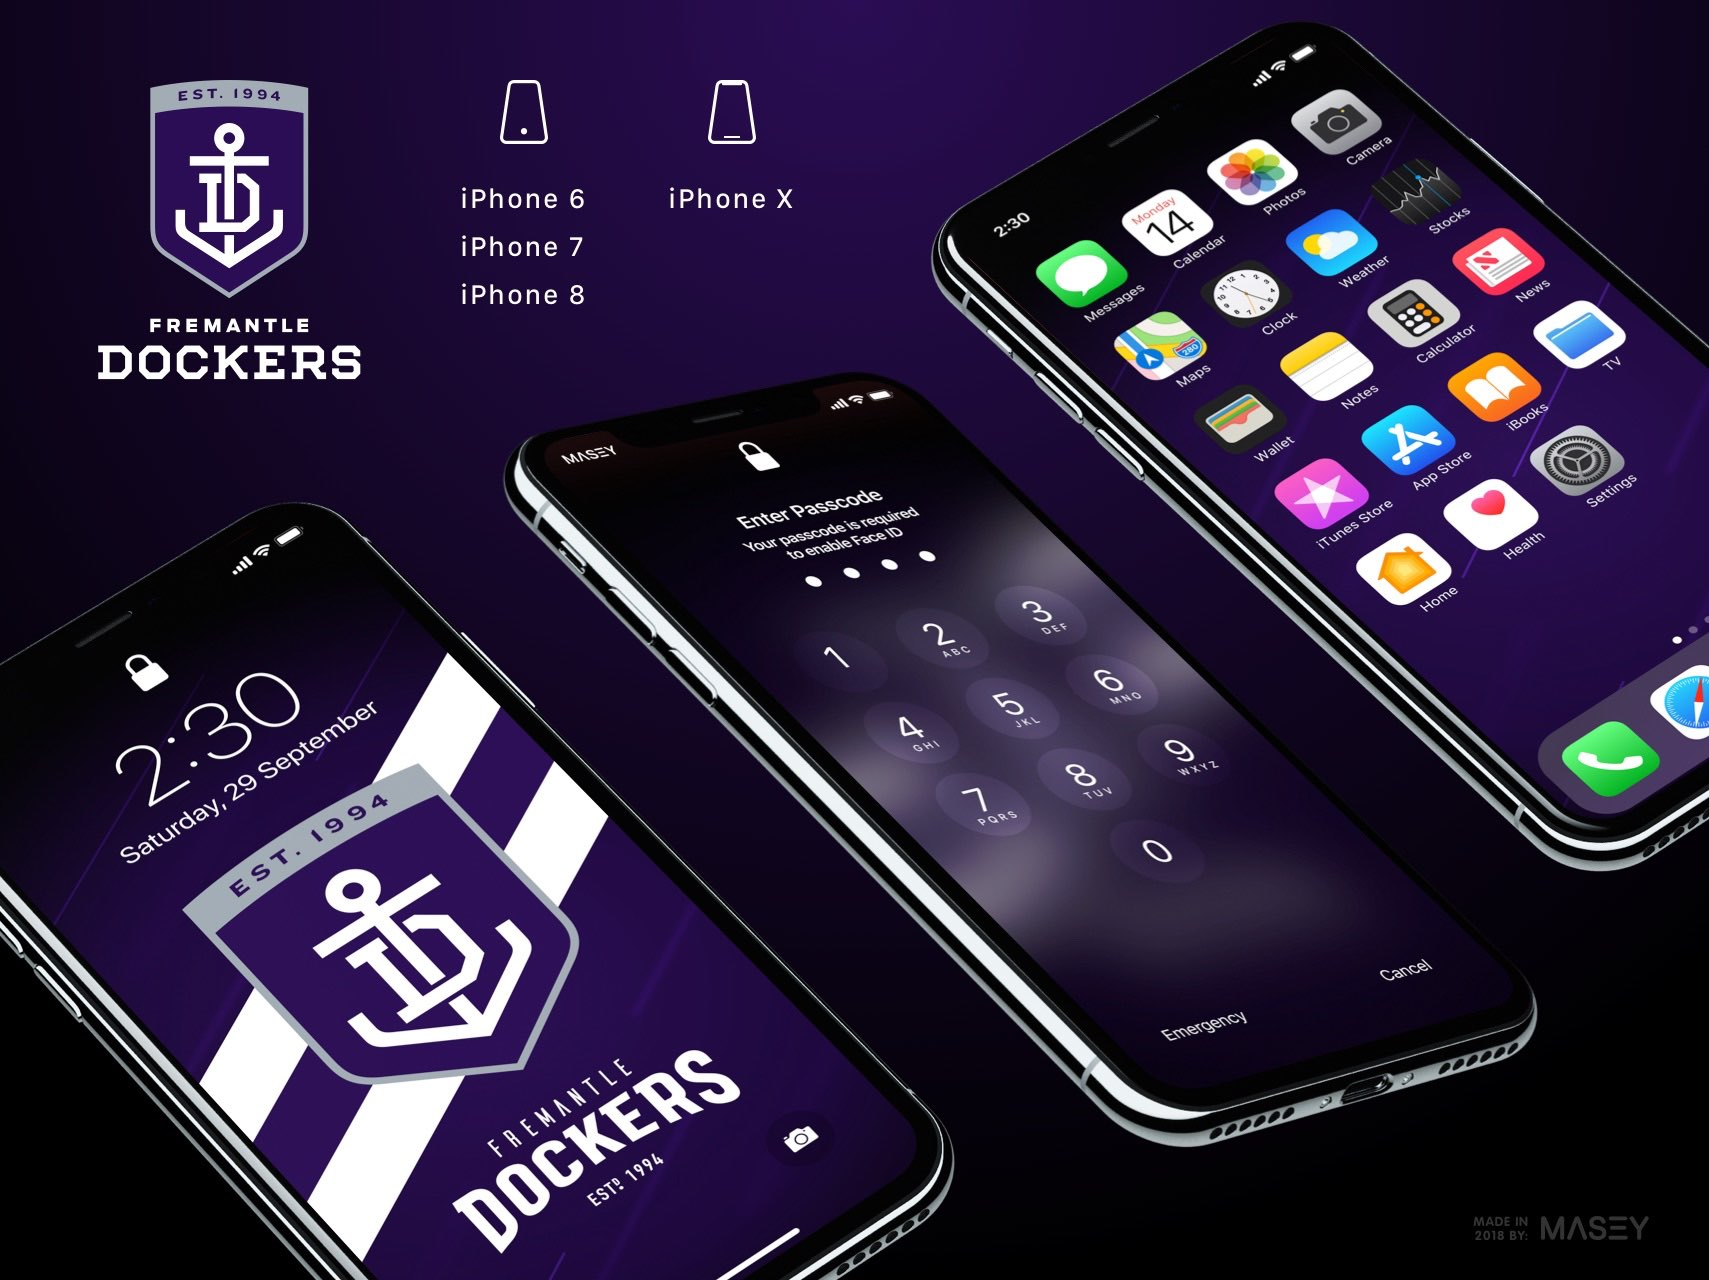 Fremantle Dockers iPhone Wallpaper